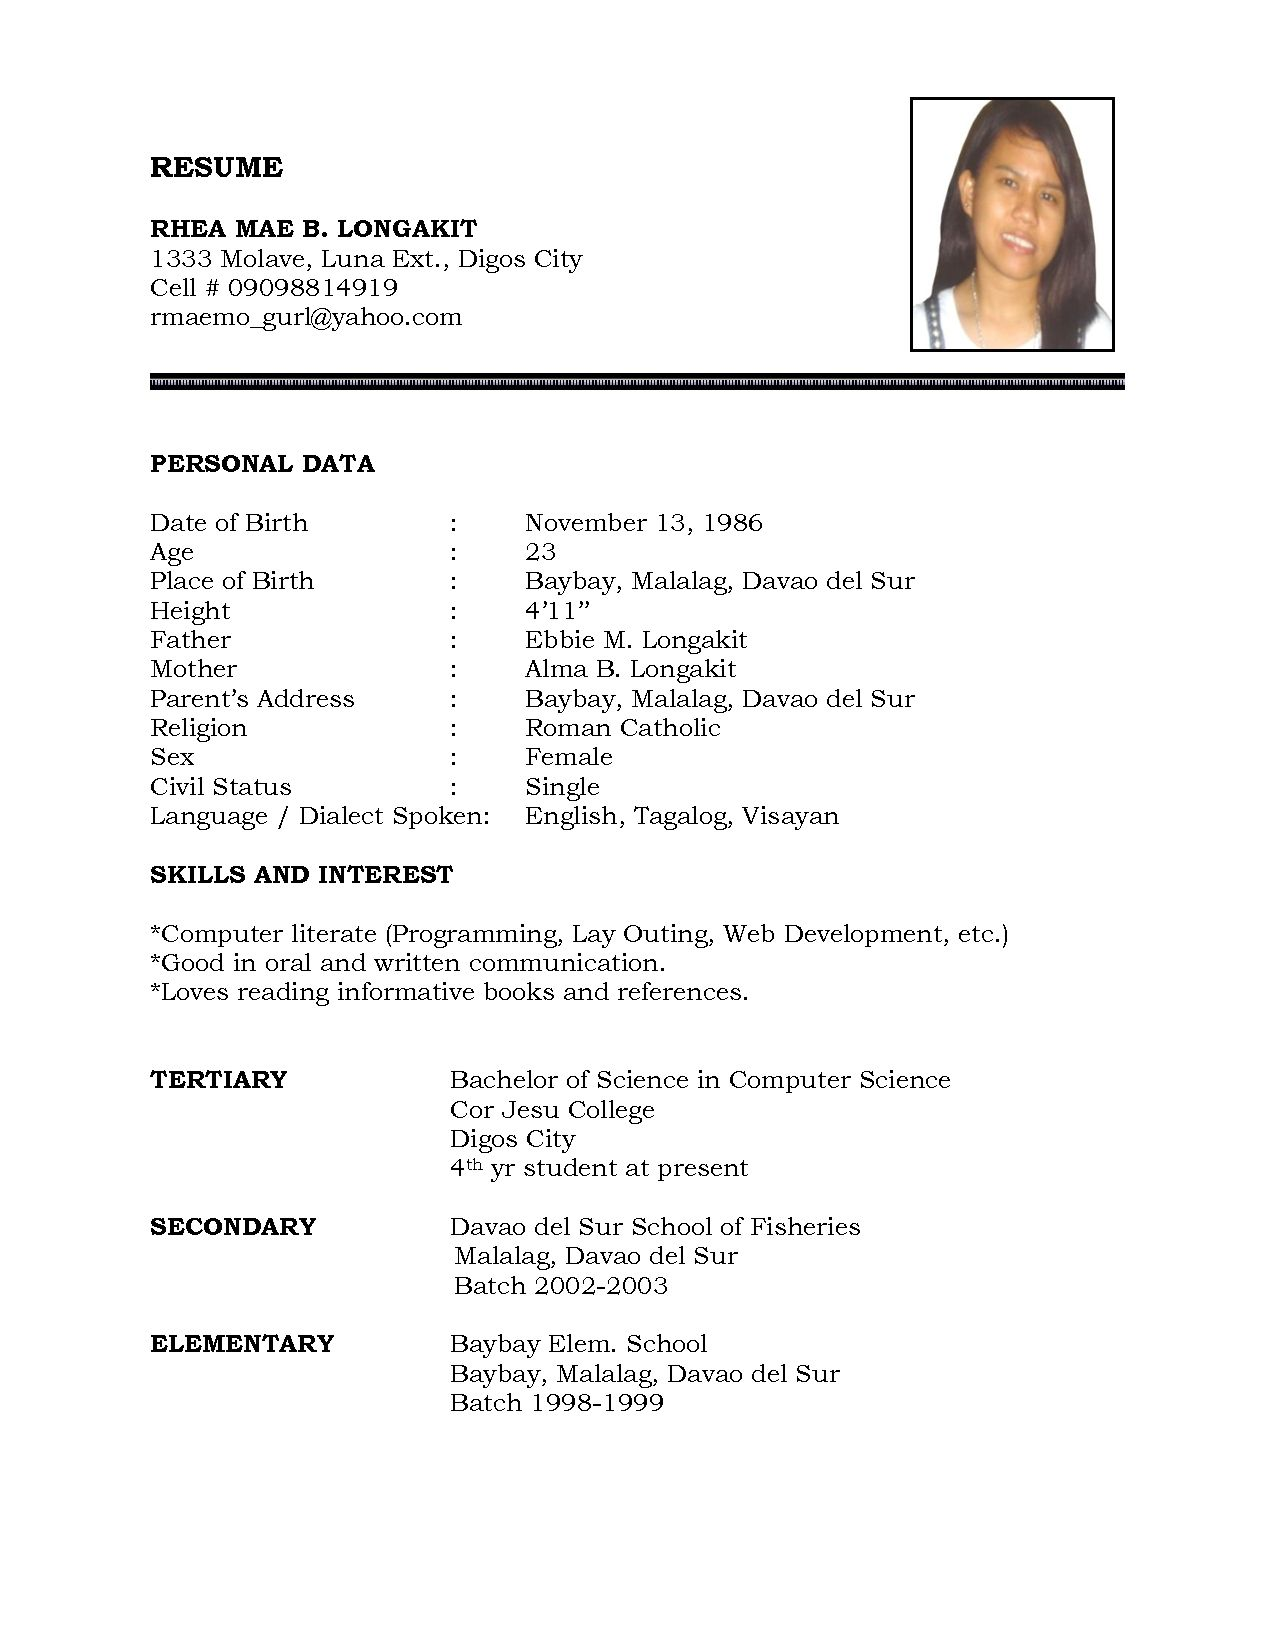 Example Of A Good Resume Format Resume Sample Simple De9e2a60f The Simple Format Of Resume